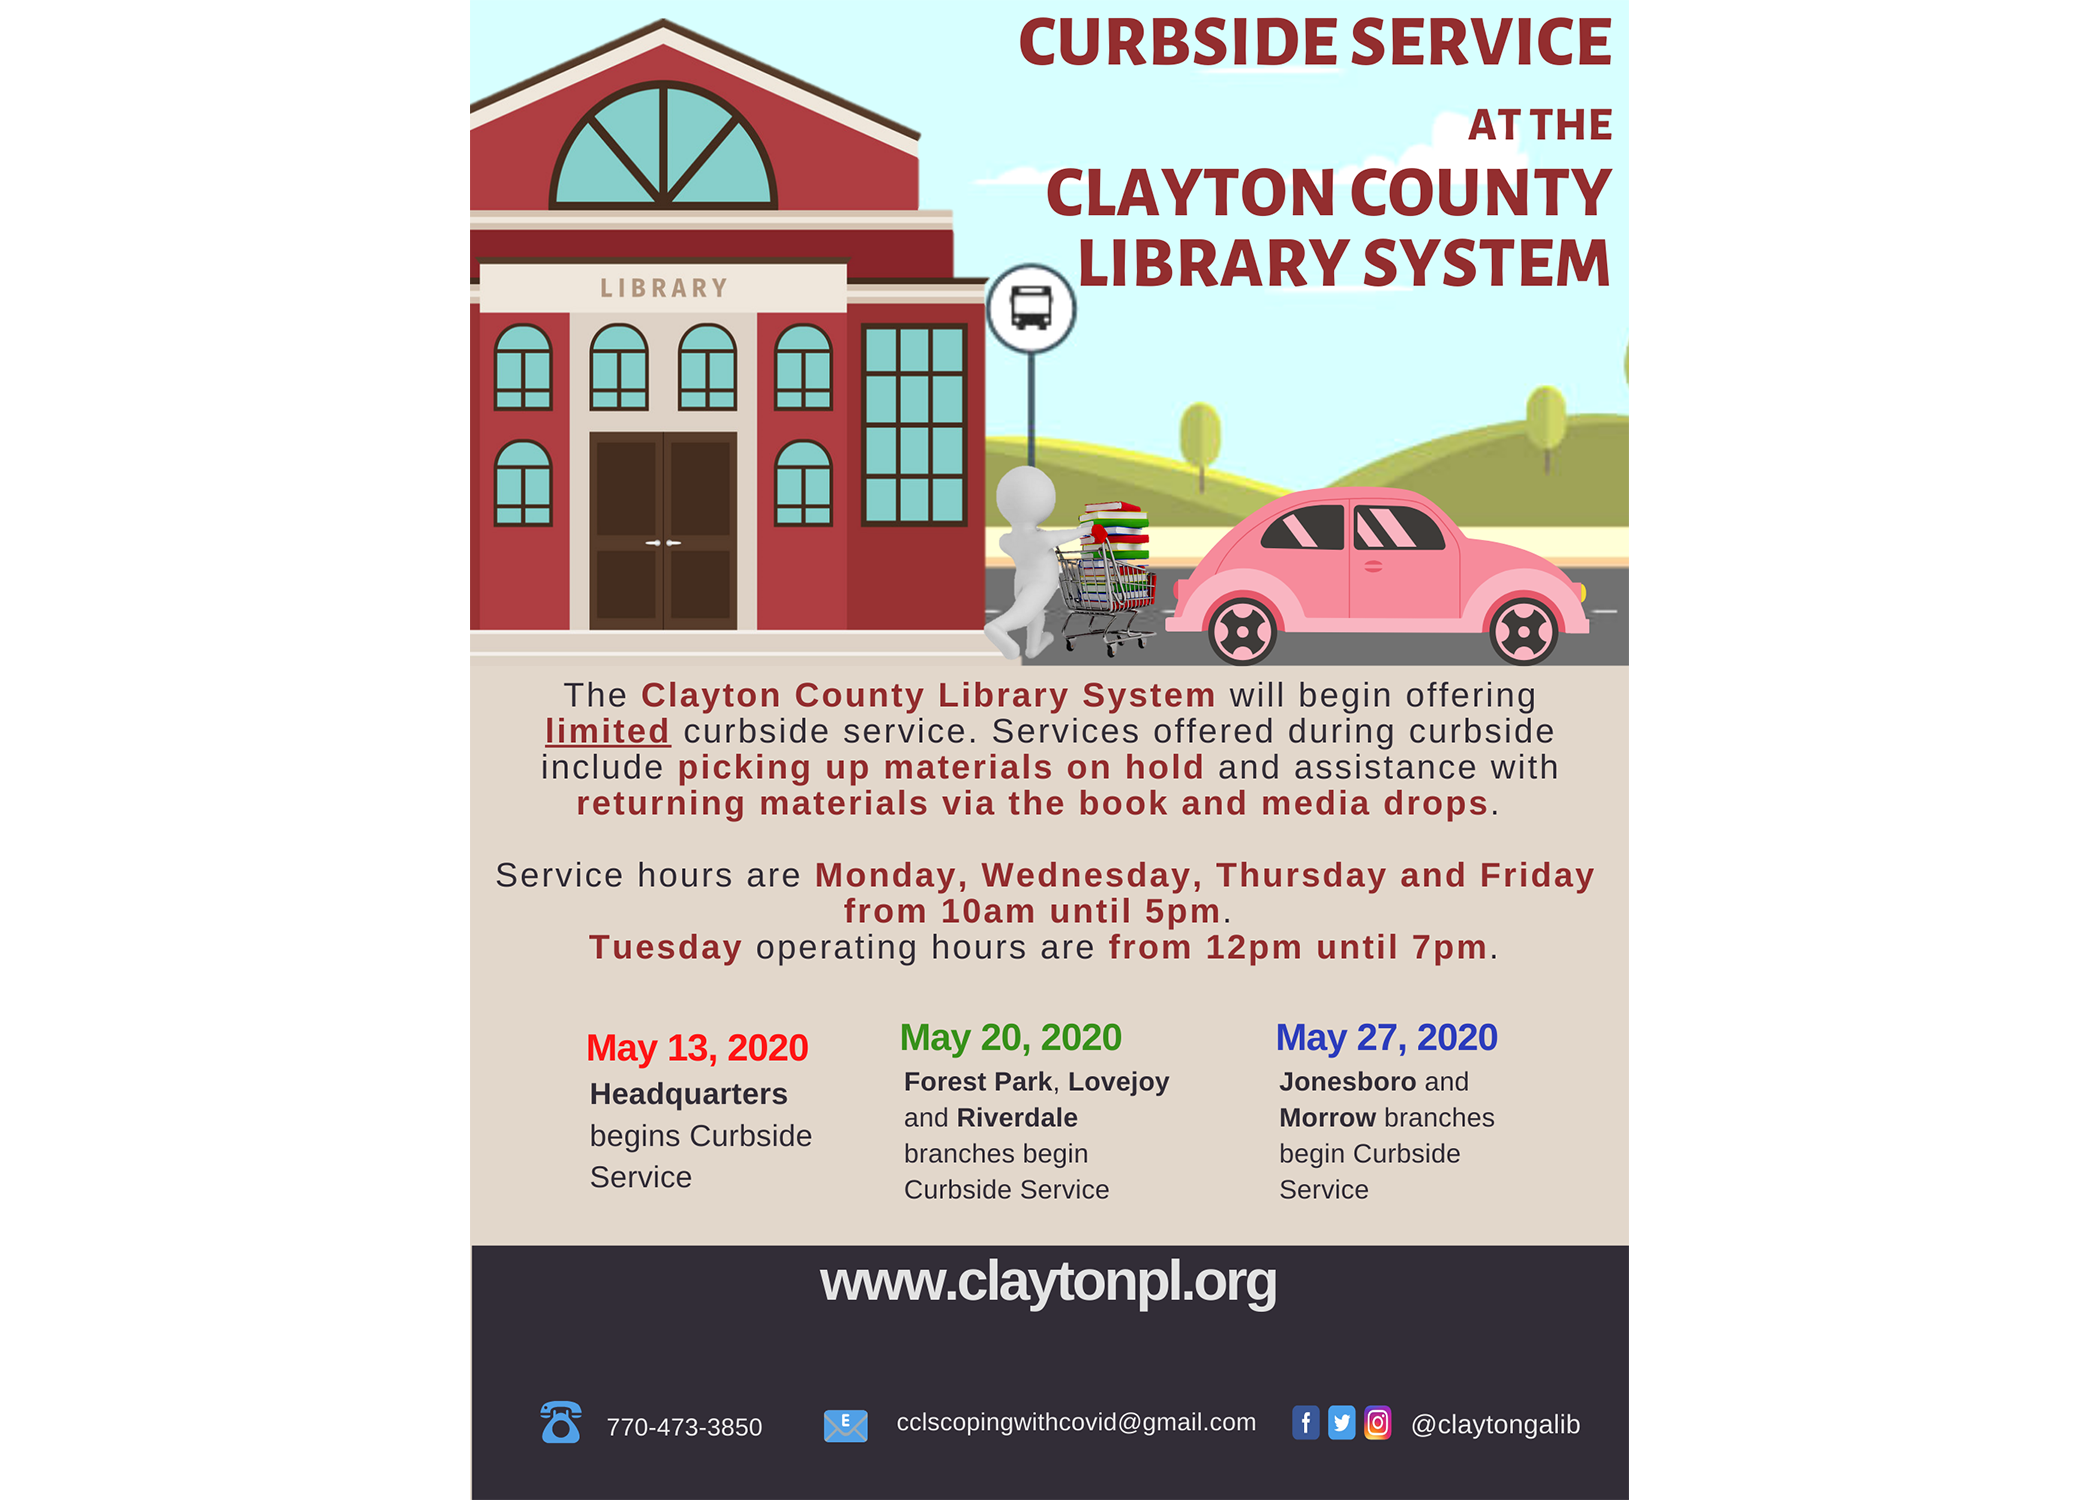 CCLSCurbsideServices